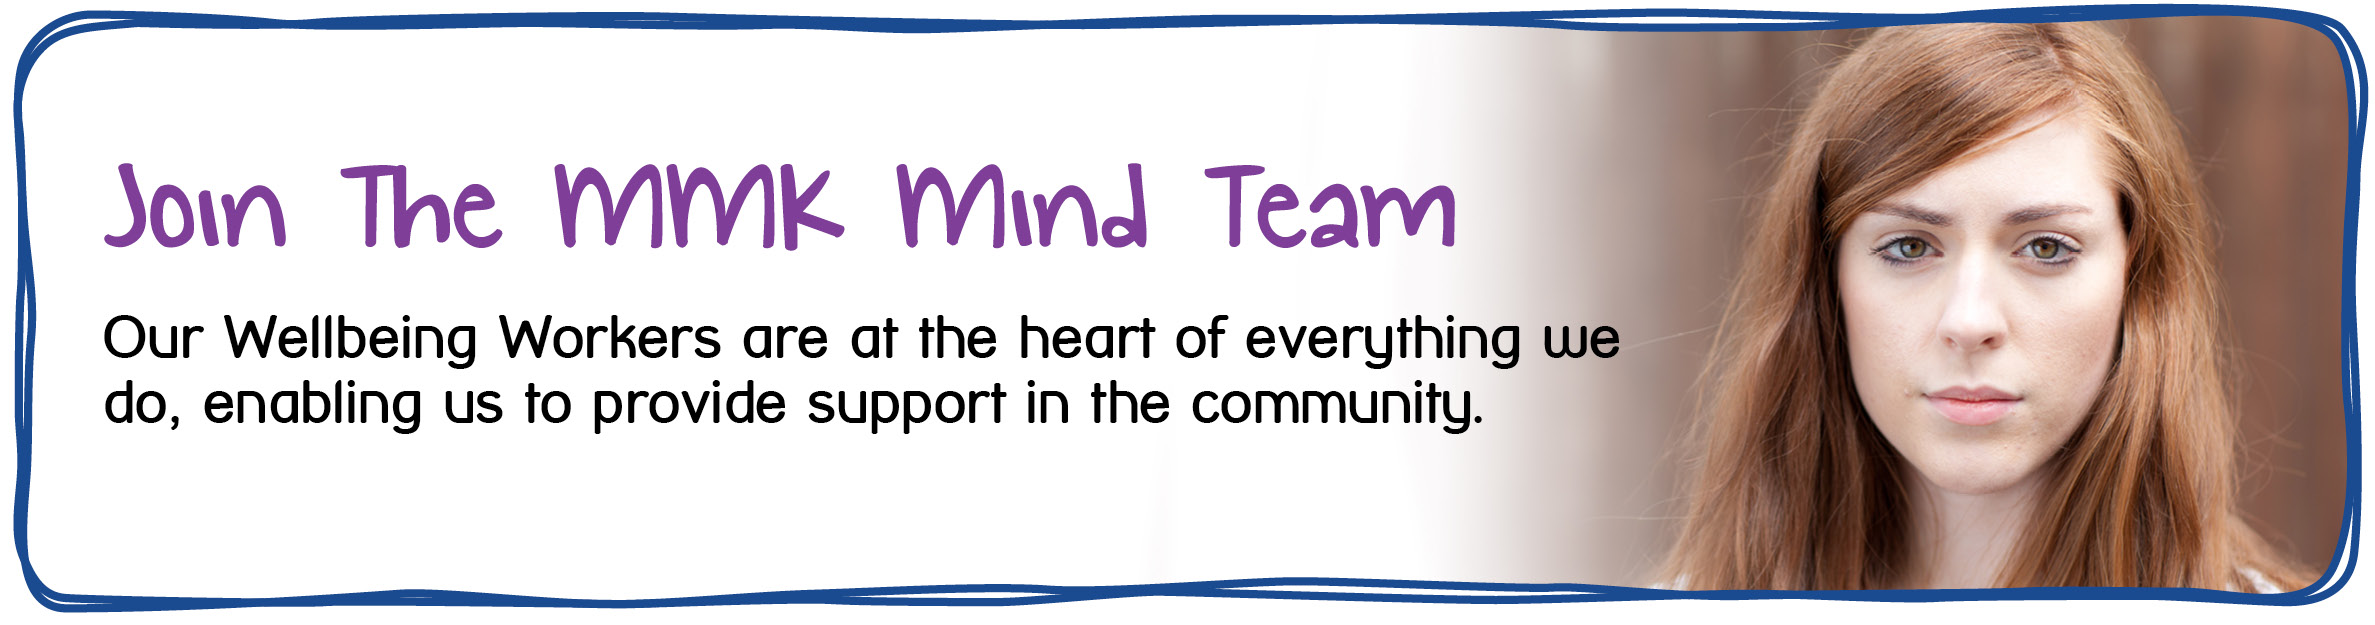 Wellbeing Worker Job Vacancy - Join The MMK Mind Team. Our Wellbeing Workers are at the heart of everything we do, enabling us to provide support in the community